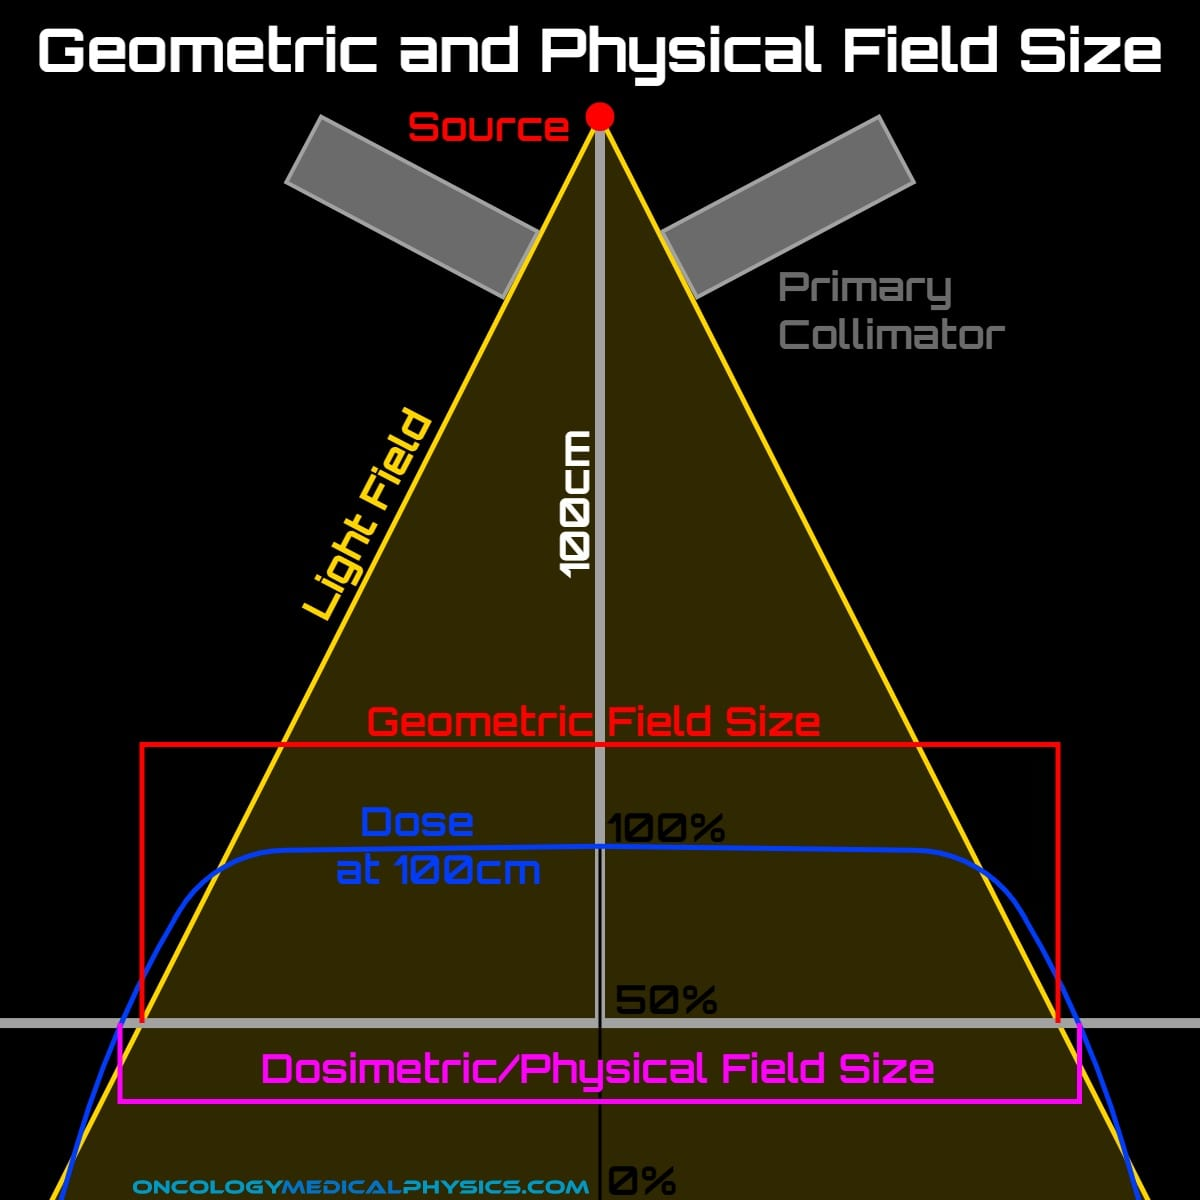 Geometric and physical field sizes aren't always the same.